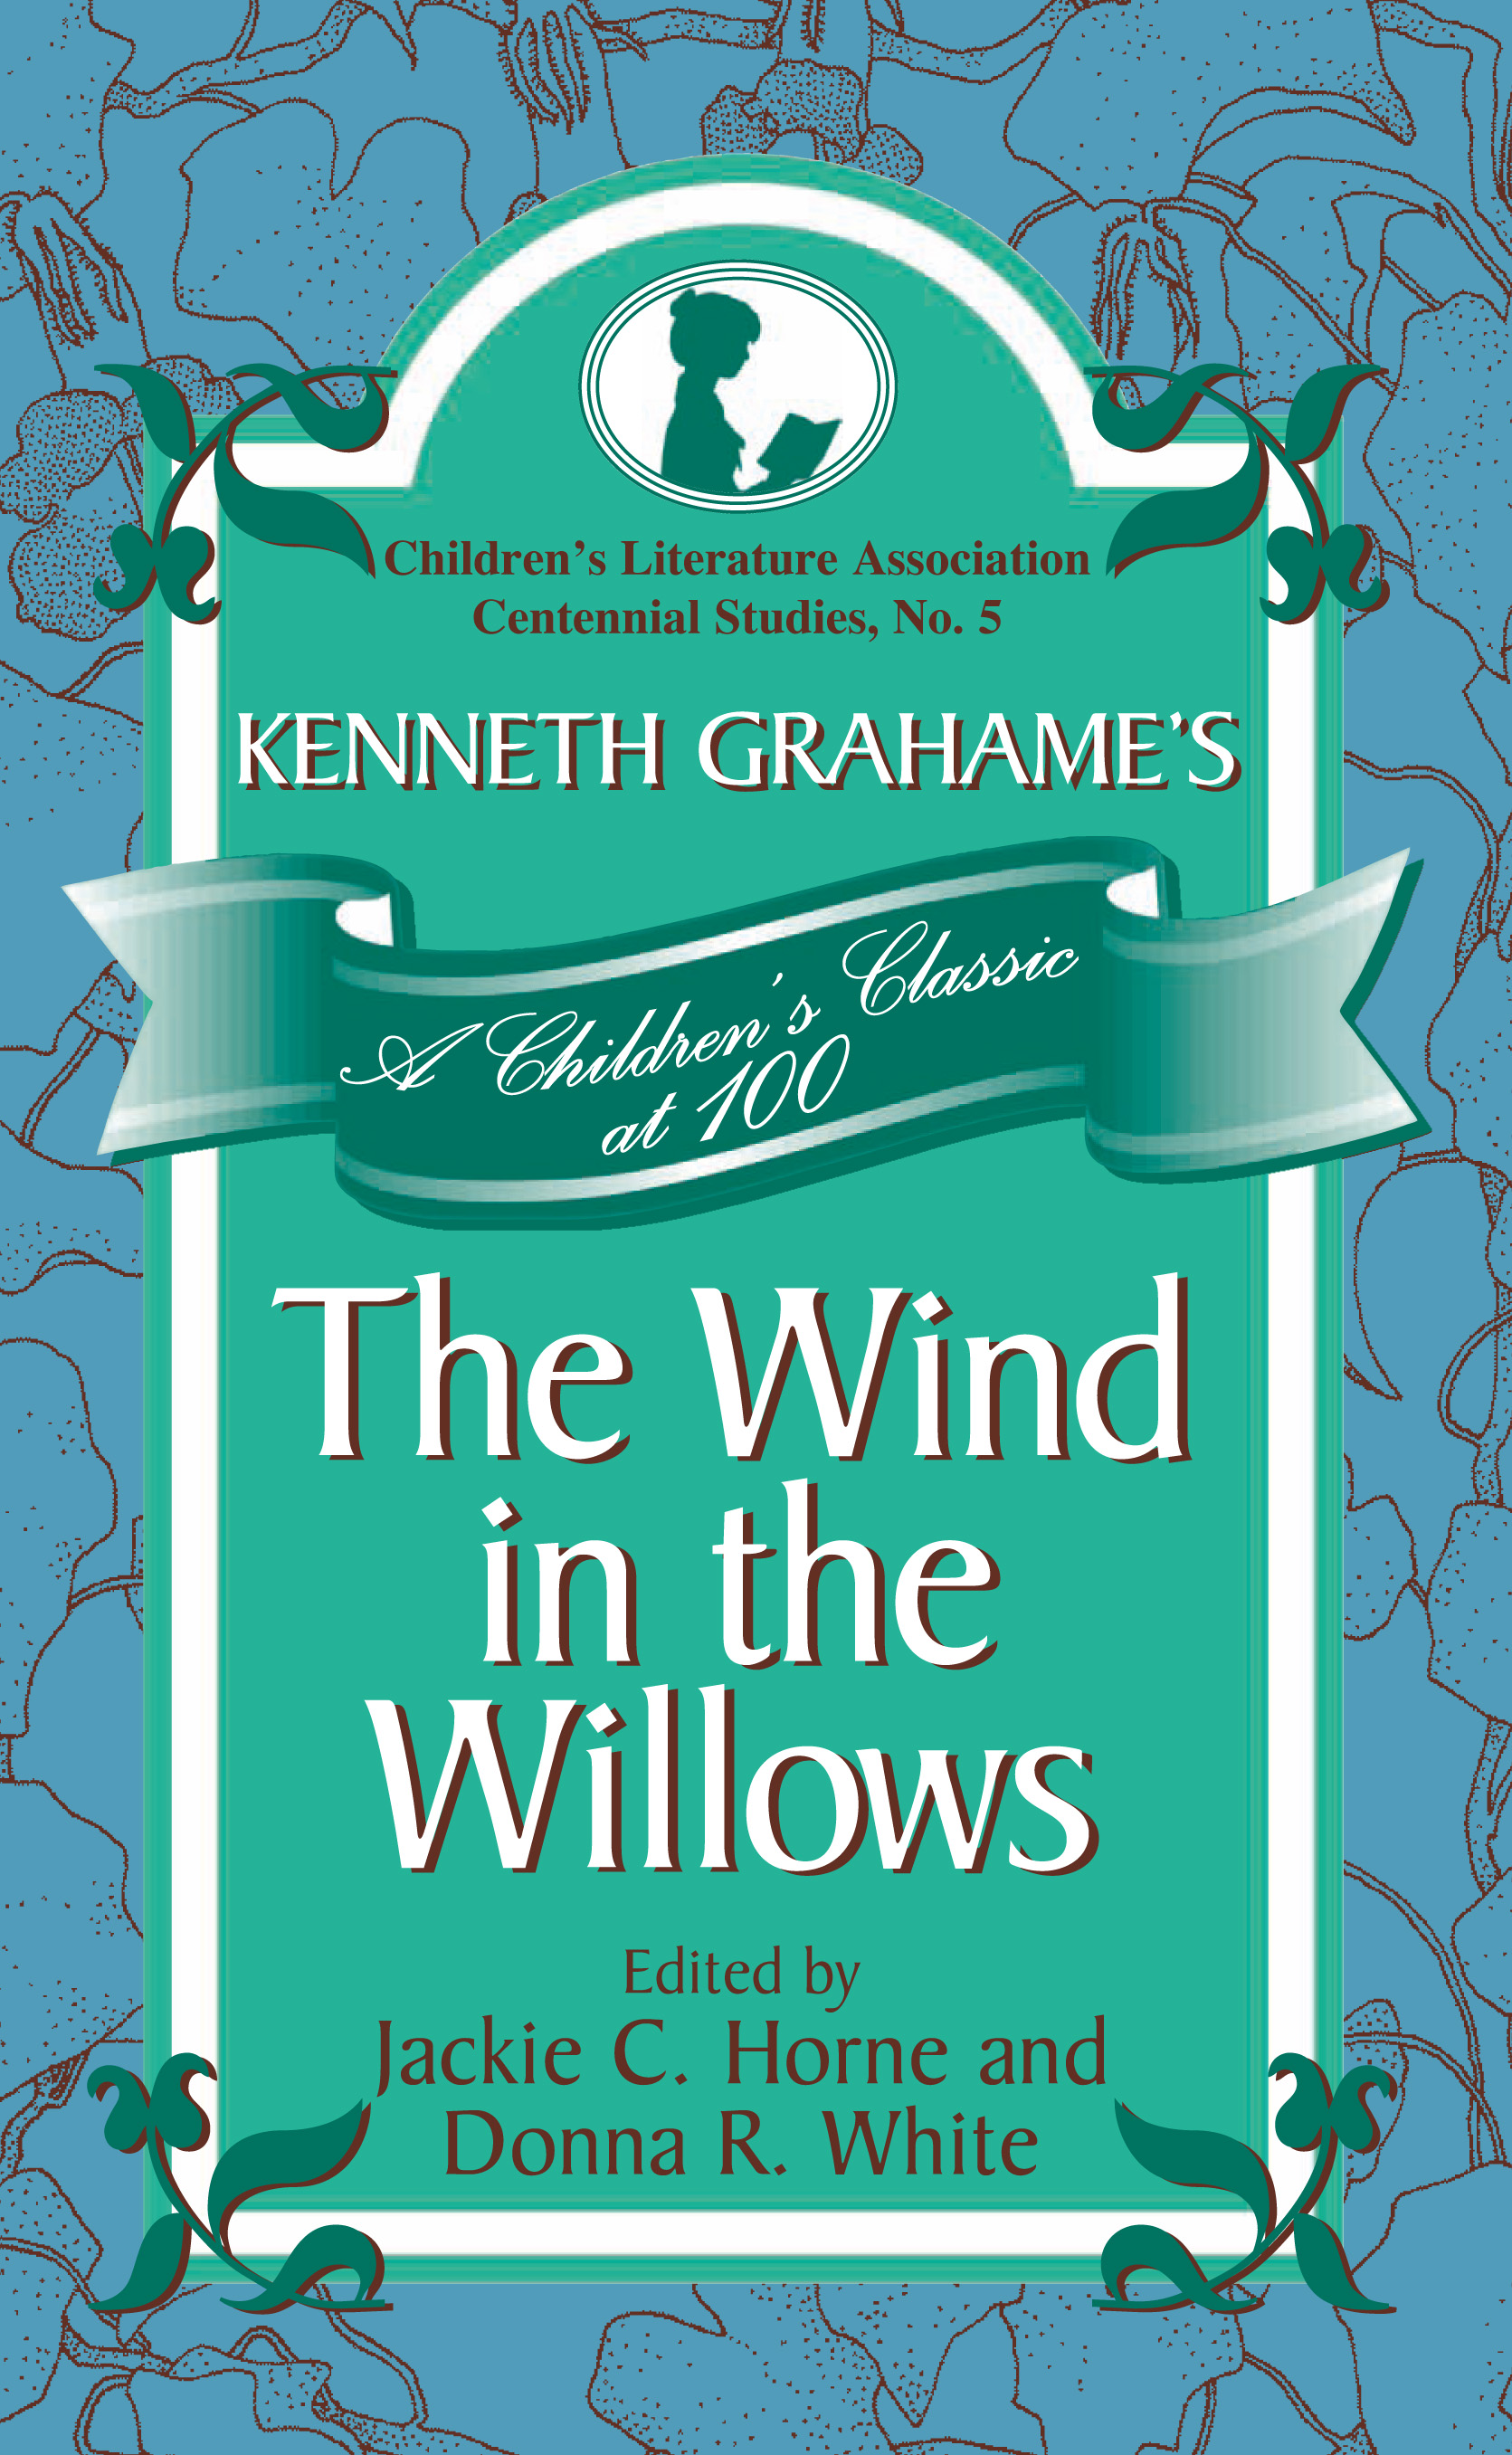 Kenneth Grahame's The Wind in the Willows: A Children's Classic at 100 By: